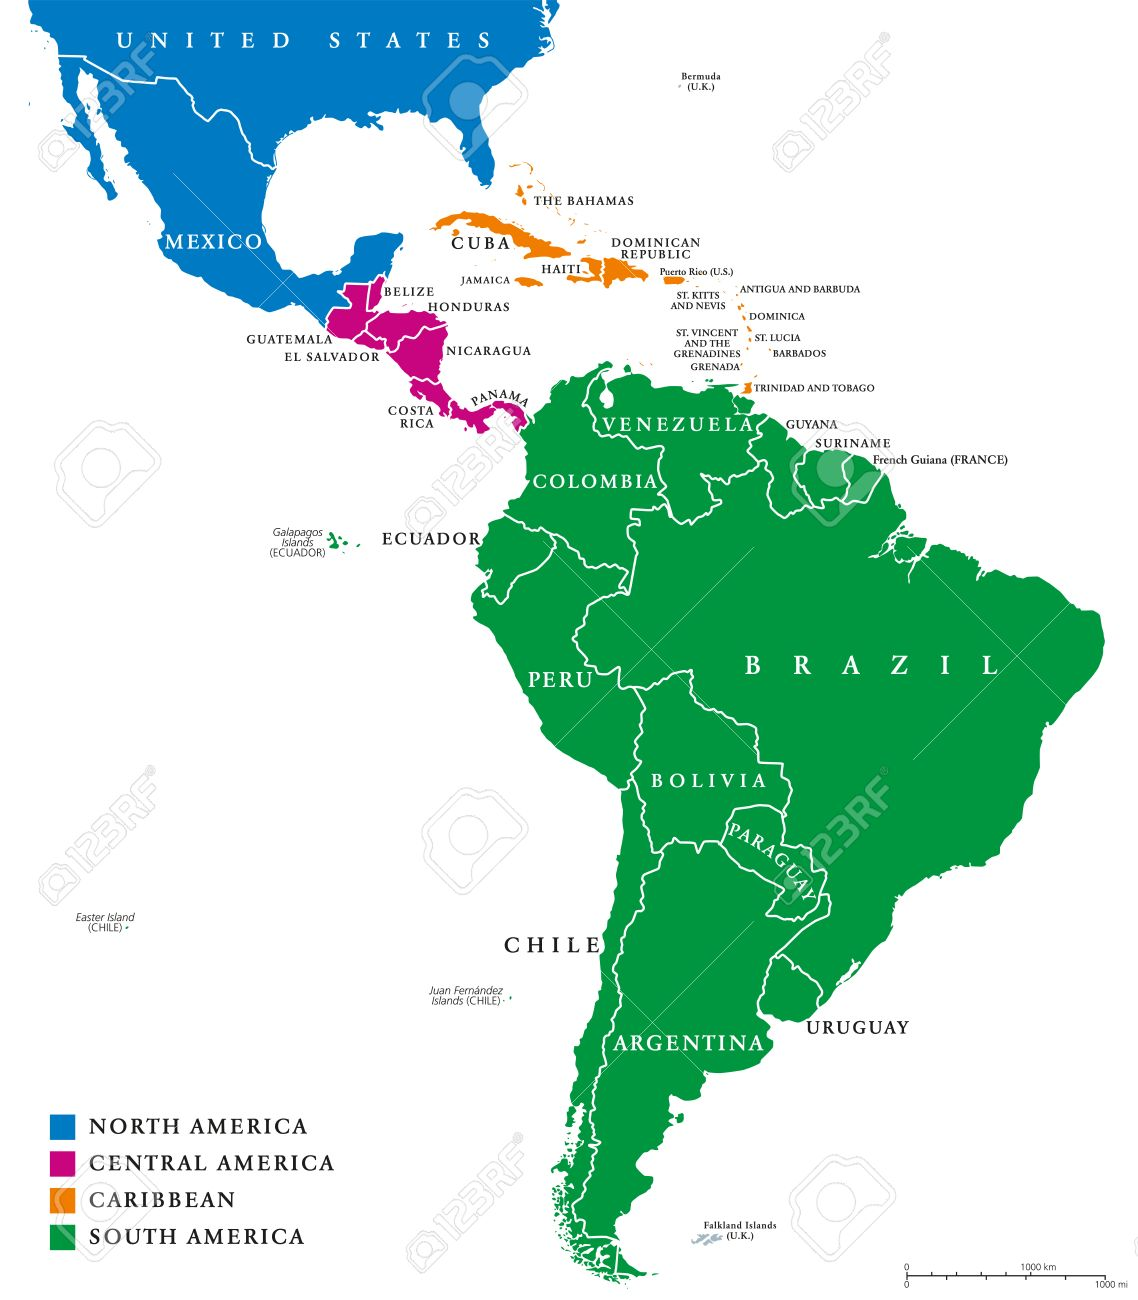 Map Of South America Free Large Images Backpacking Pinterest - Ecuador south america map